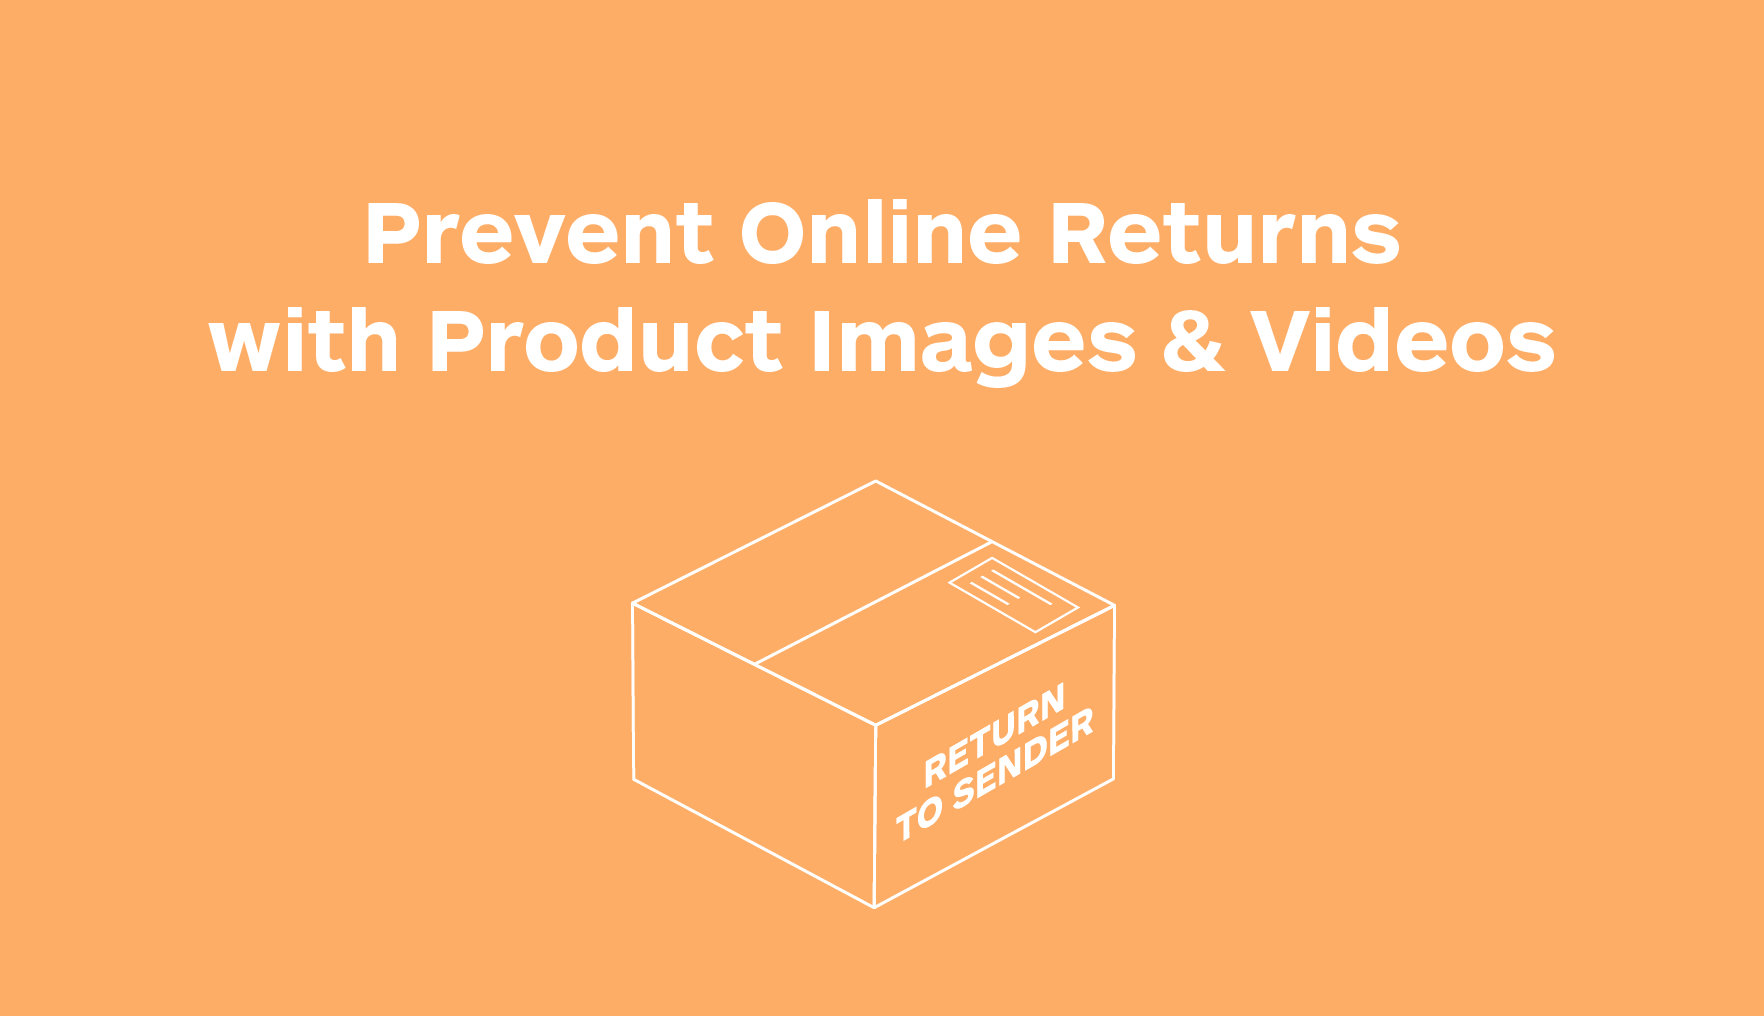 Prevent Online Returns with Product Images and Videos